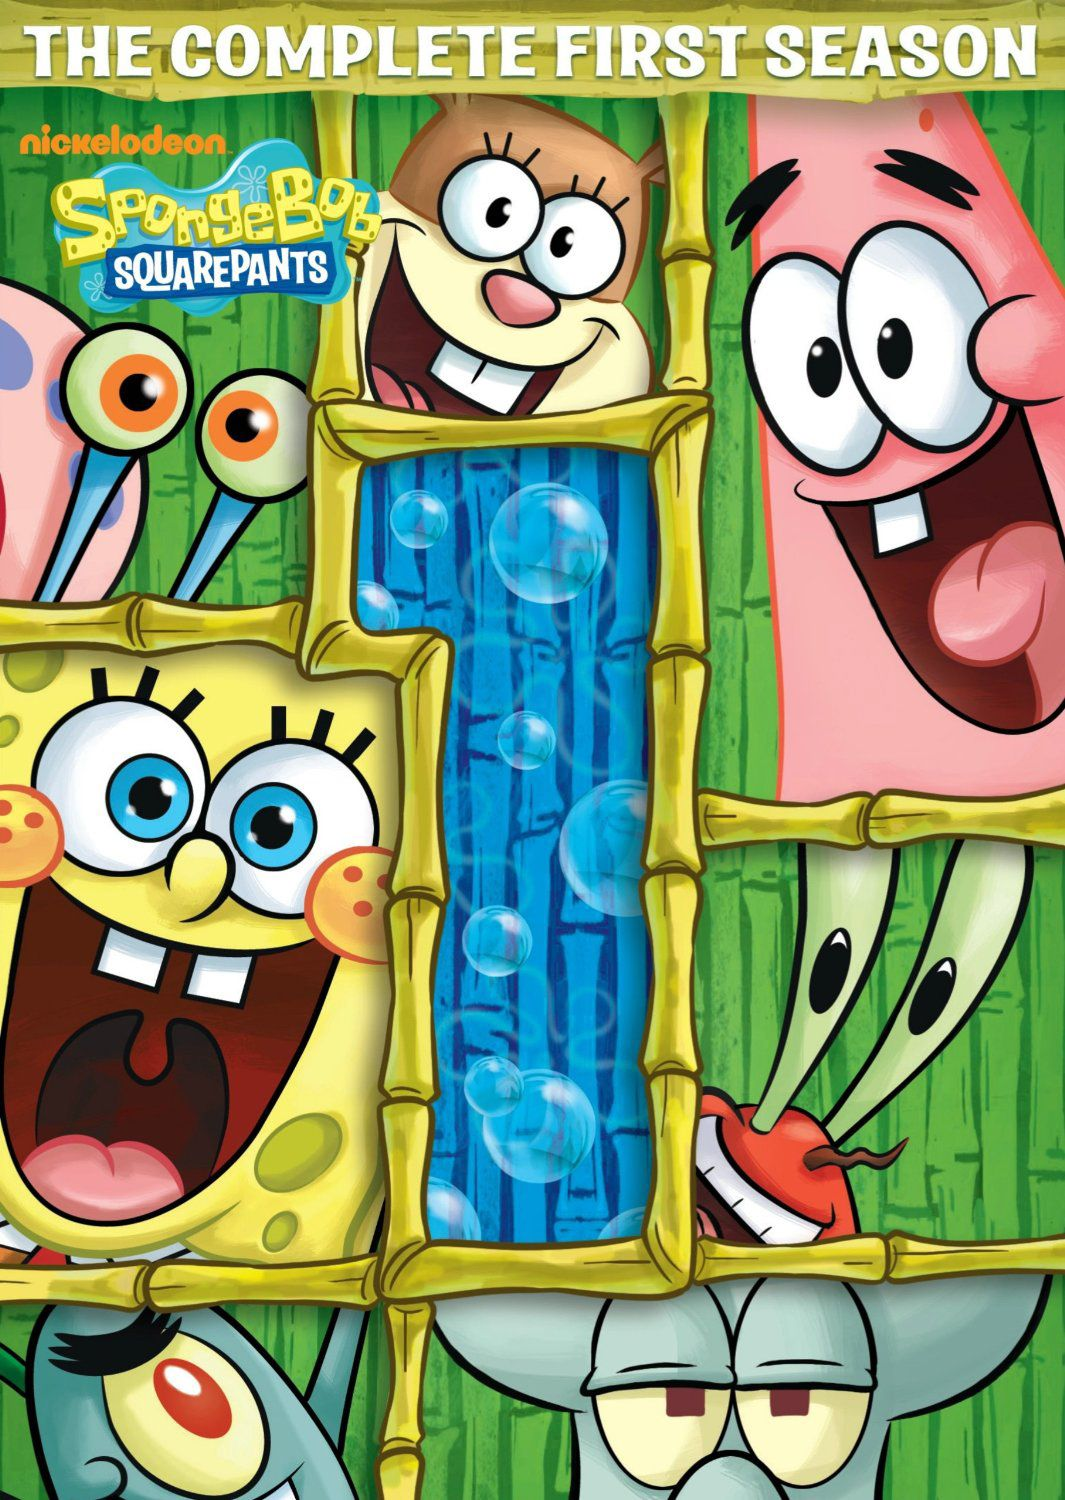 The Complete First Season Encyclopedia SpongeBobia